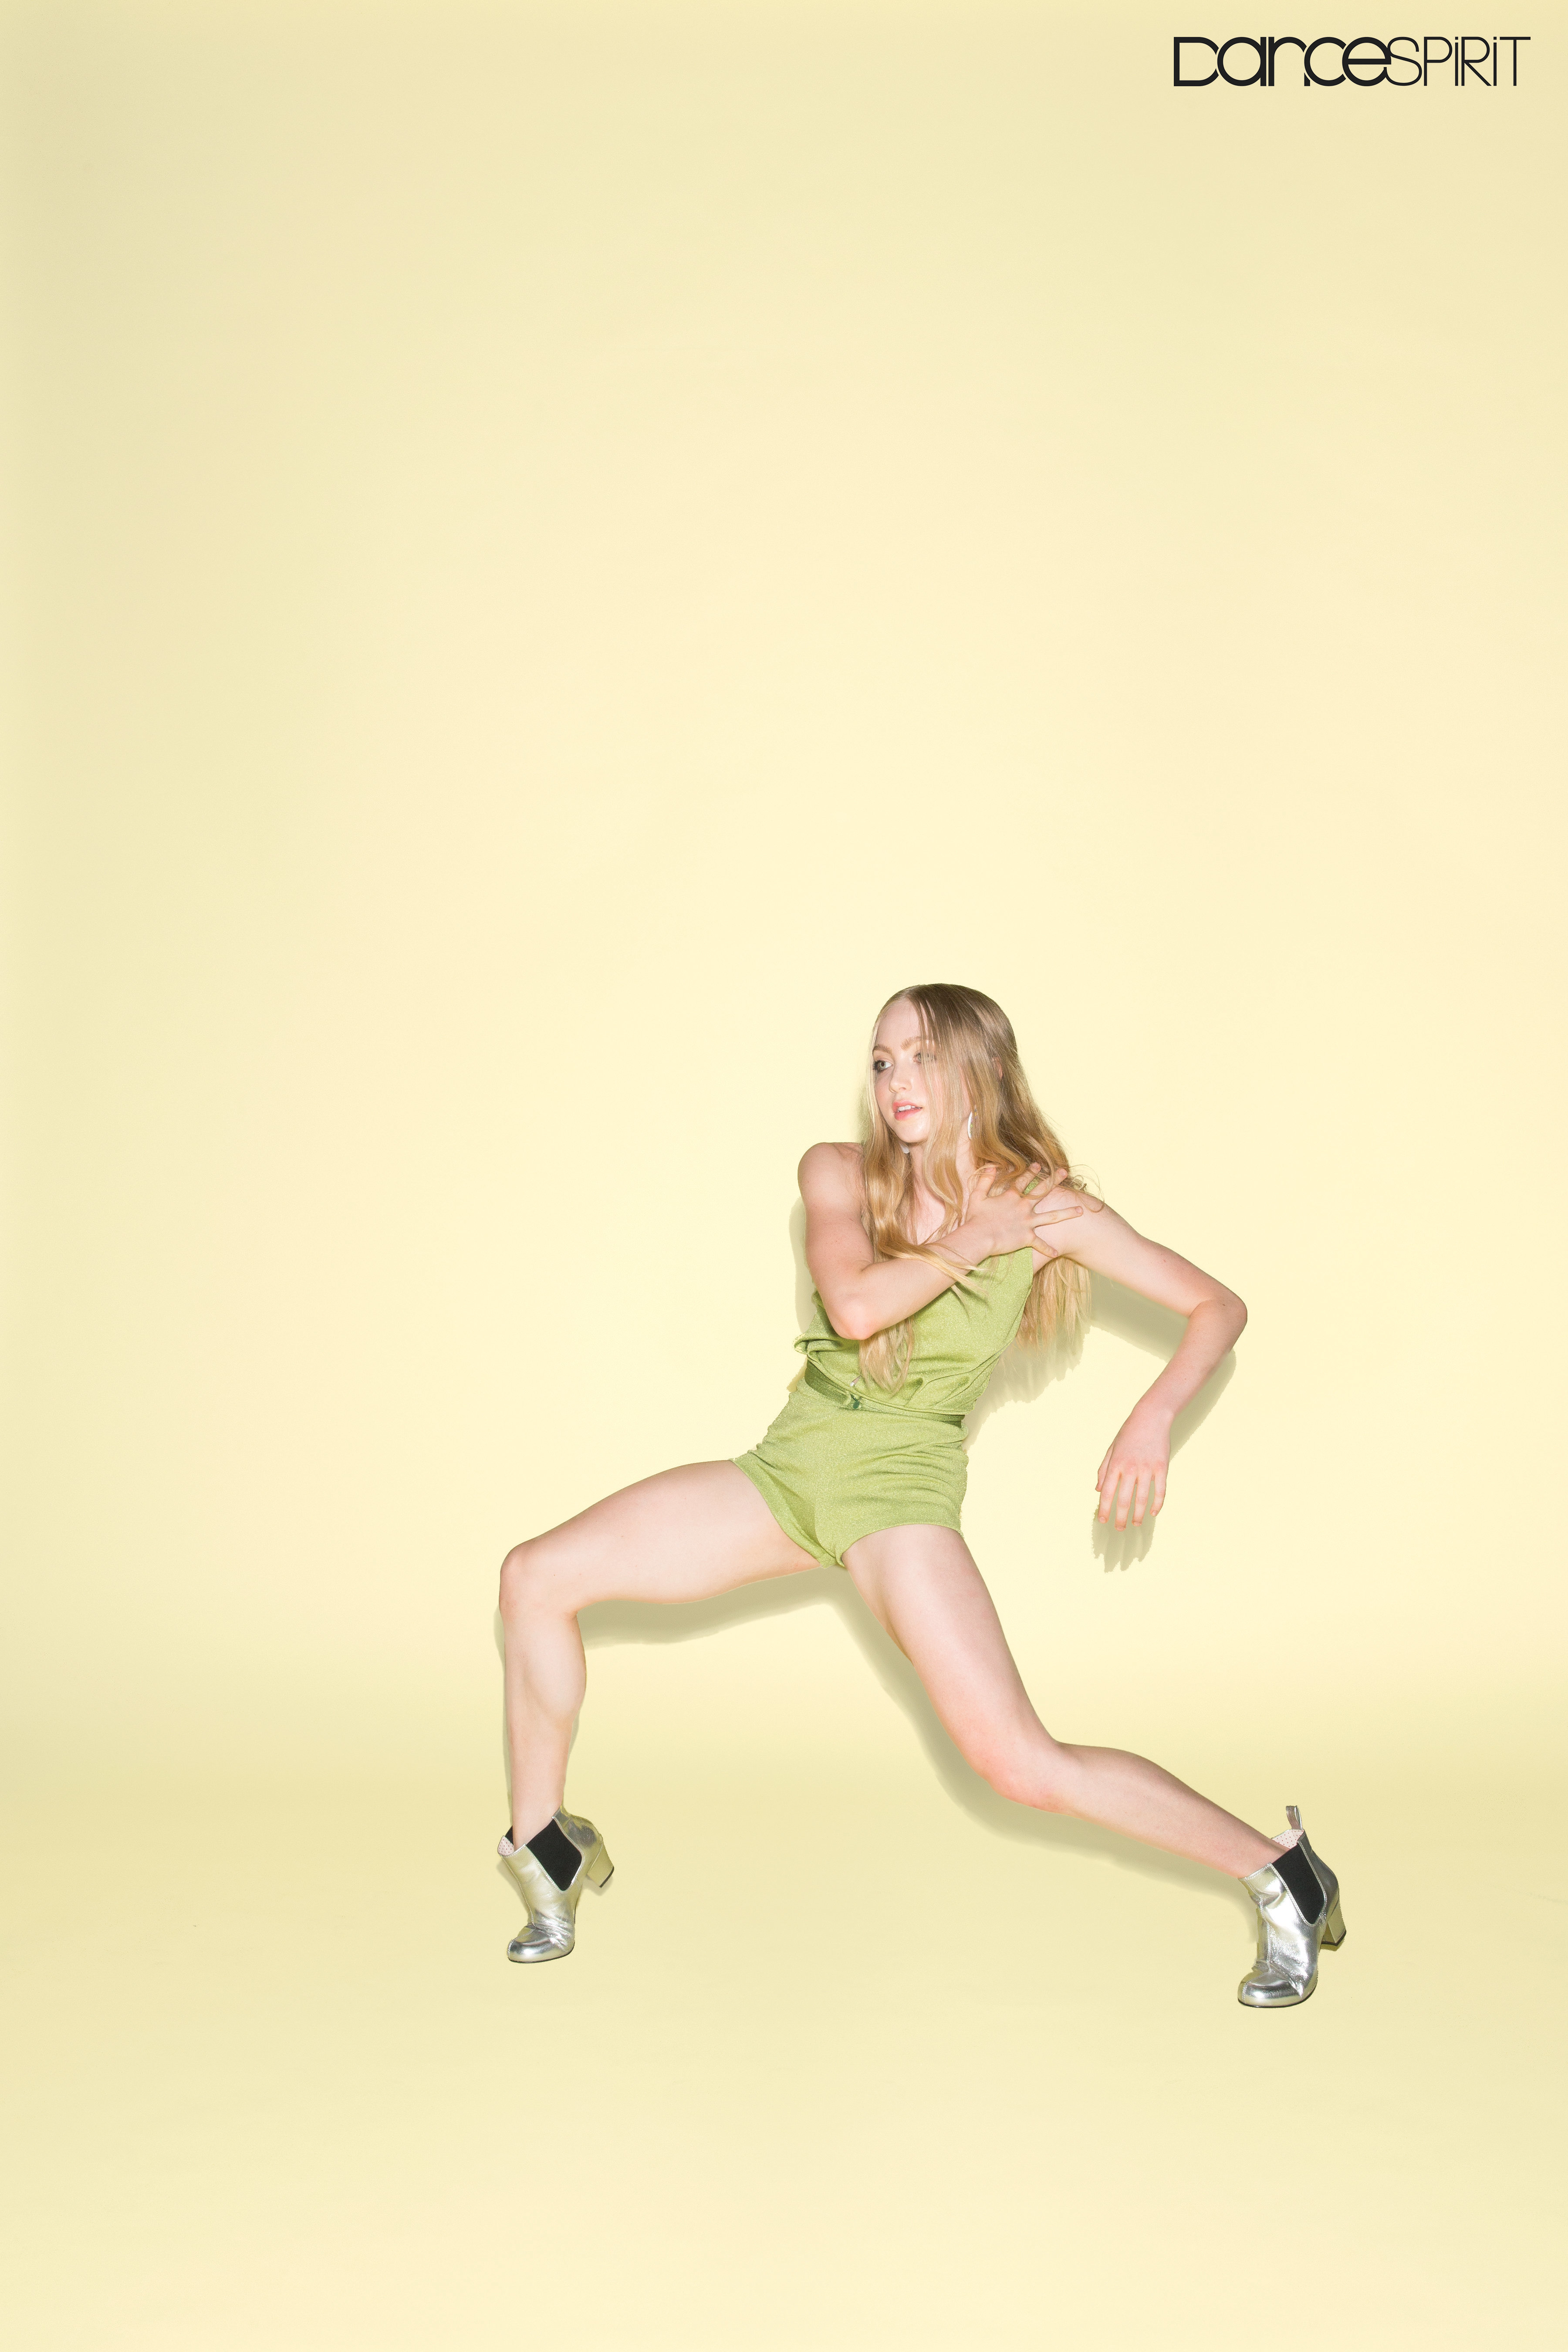 #SocialDisDancing: A Look at Lucy Vallely's At-Home Dance Life